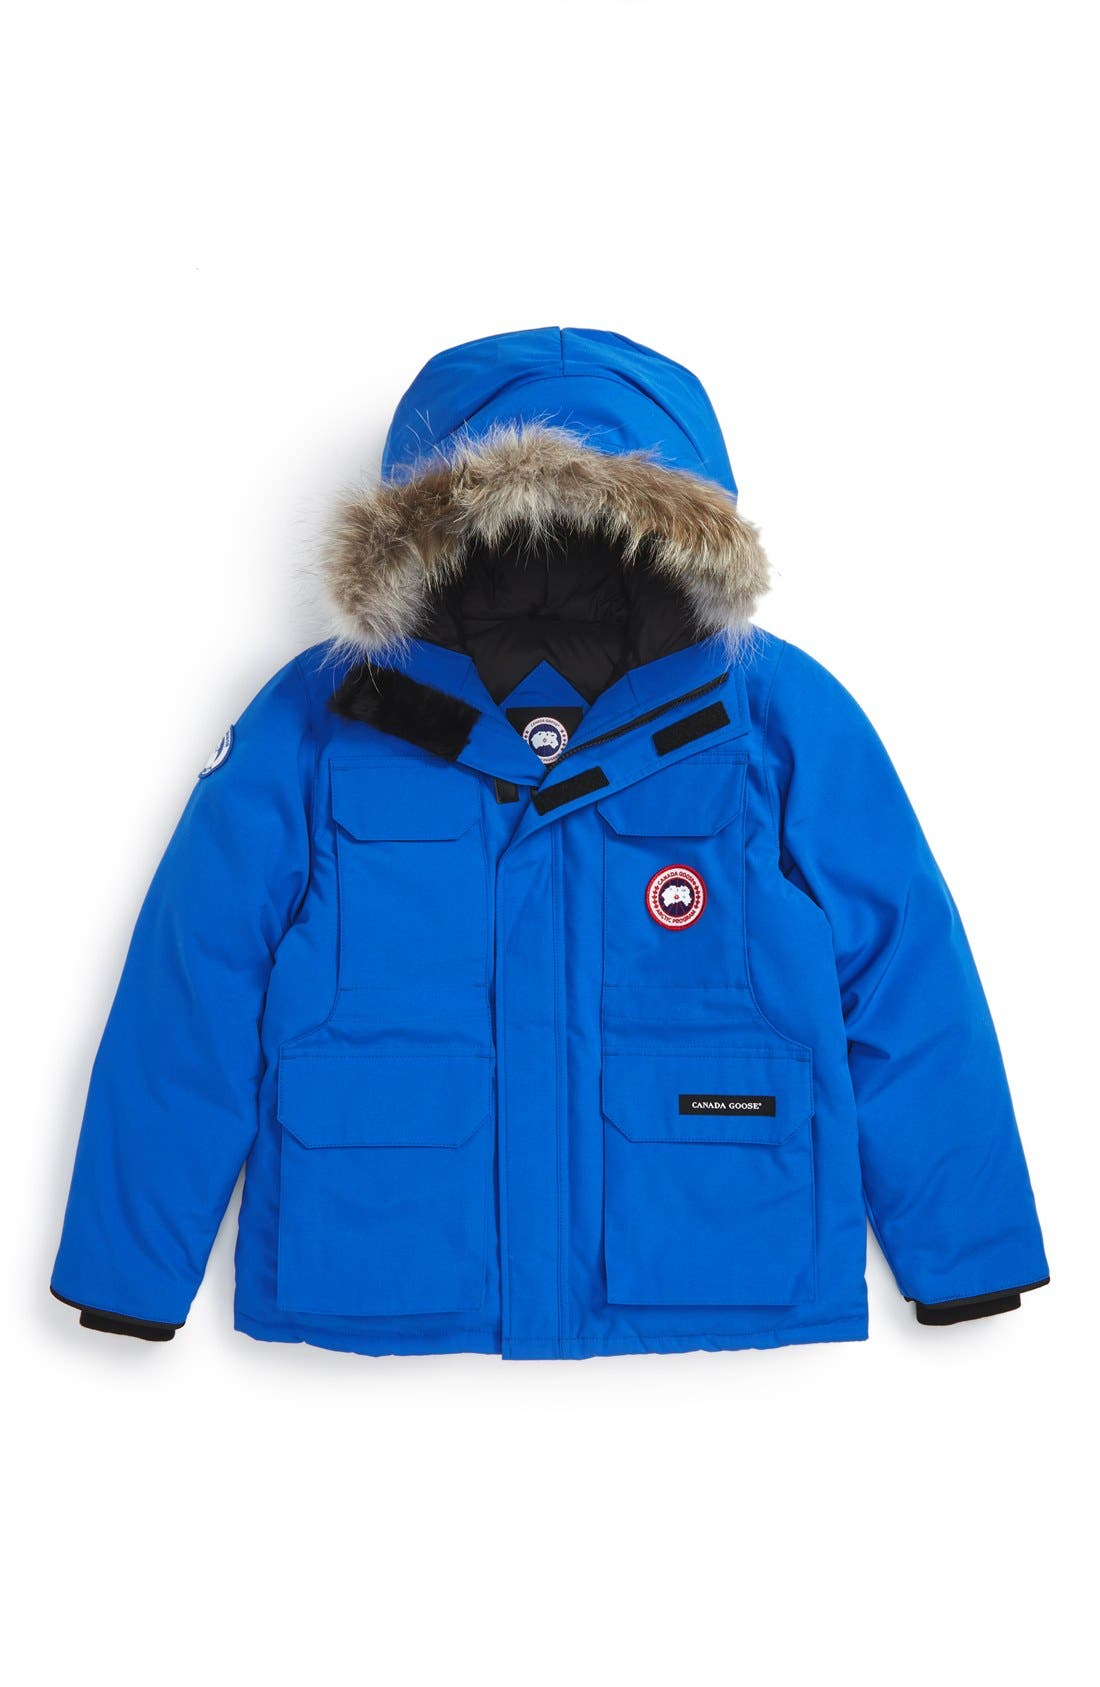 Main Image - Canada Goose 'PBI Expedition' Waterproof Down Parka with Genuine Coyote Fur Trim (Little Boys & Big Boys)